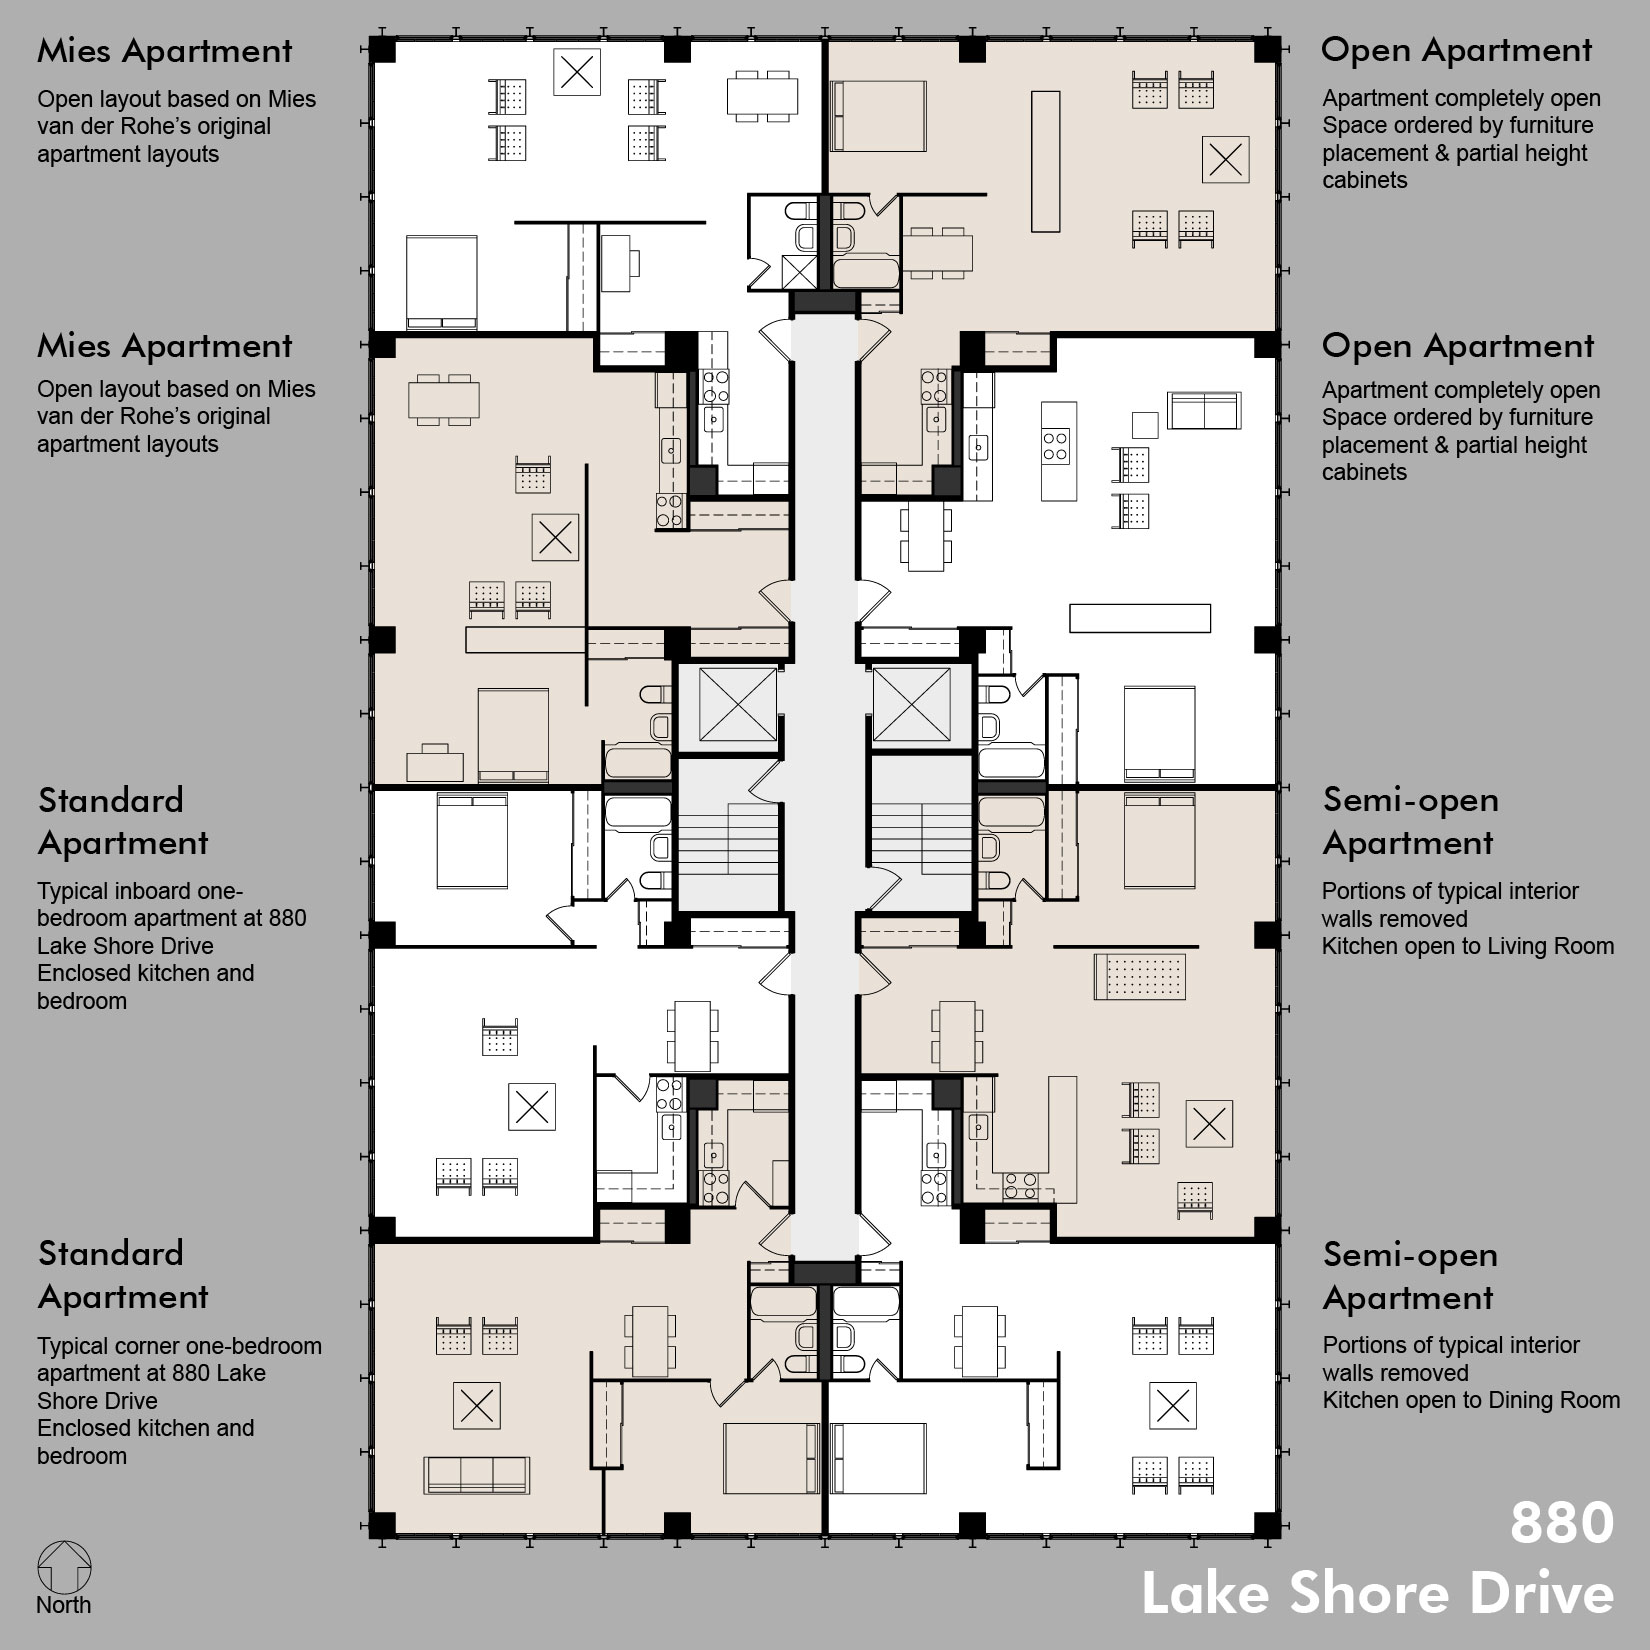 880 Floor Plans Including Standard Apt: building plans and designs